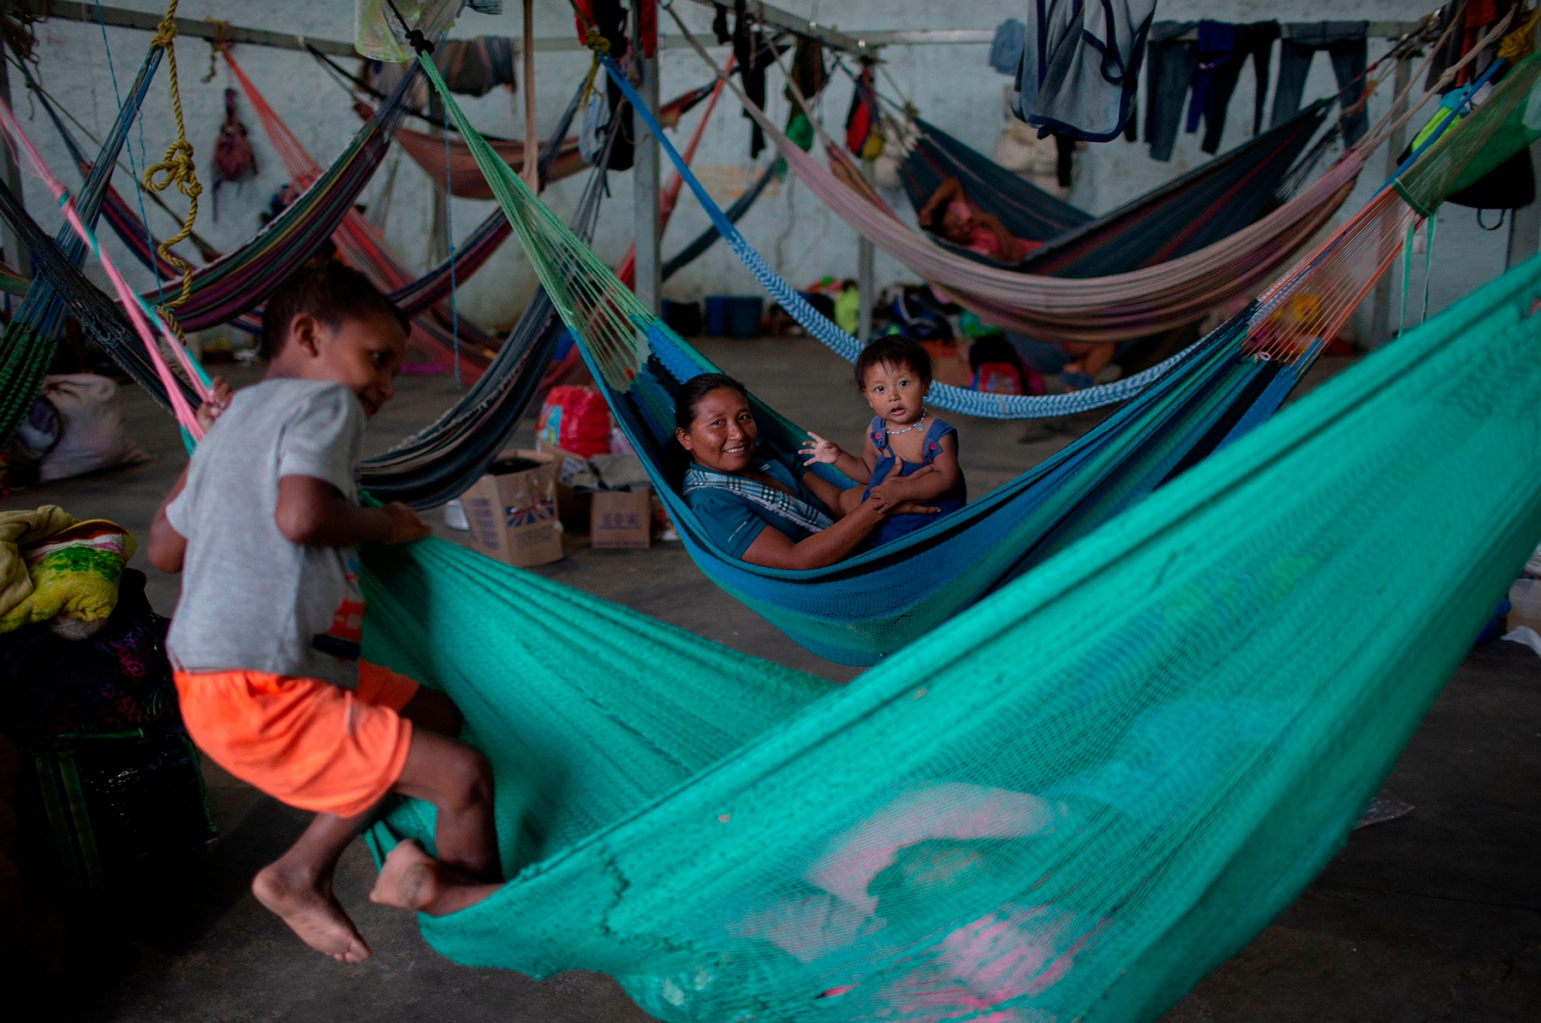 Members of the Warao tribe, Venezuela's second-largest indigenous group, rest at the Janokoida shelter in the border city of Pacaraima, Brazil, on Aug. 21. MAURO PIMENTEL/AFP/Getty Images